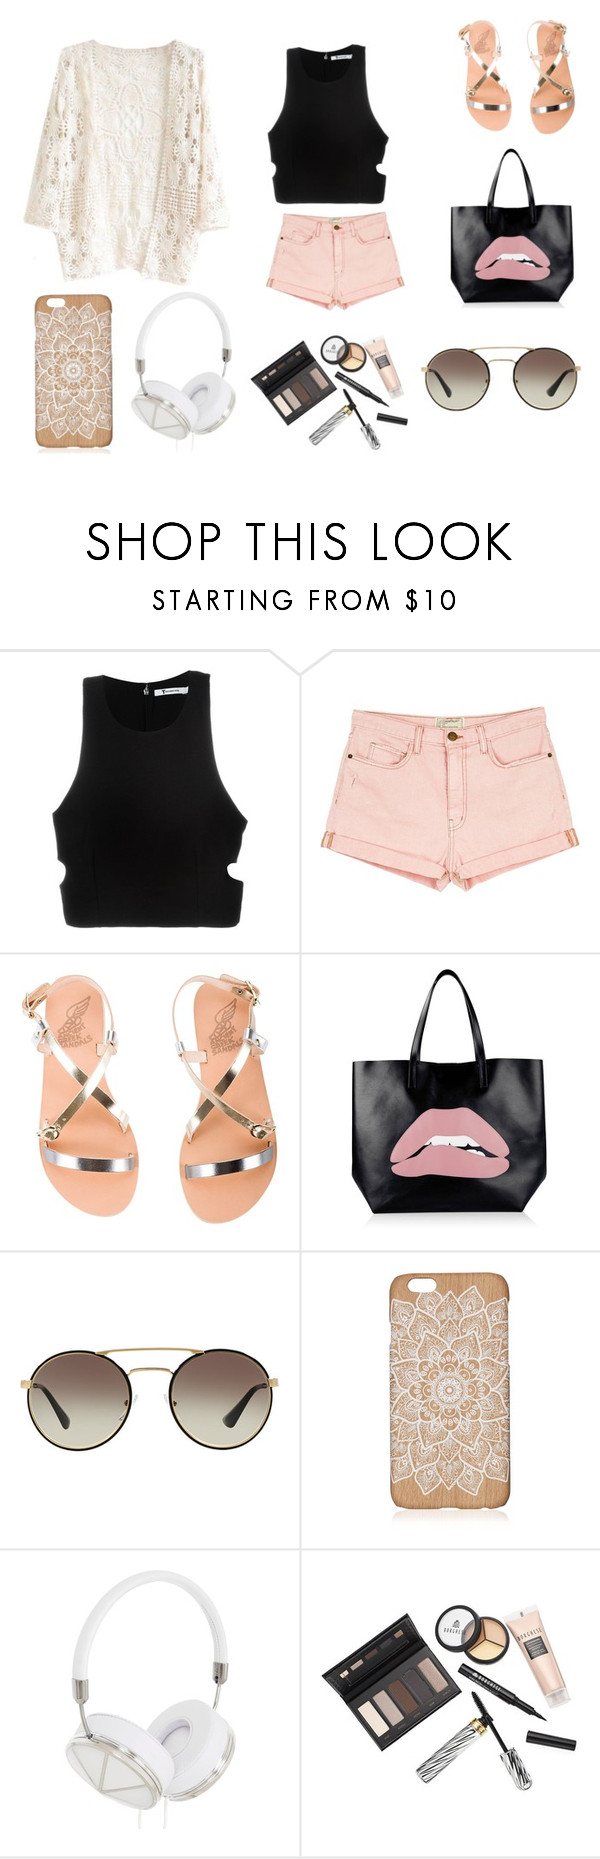 """""""Hello beautiful"""" by emma-r-villanueva ❤ liked on Polyvore featuring T By Alexander Wang, Current/Elliott, Ancient Greek Sandals, RED Valentino, Prada, Frends and Borghese"""